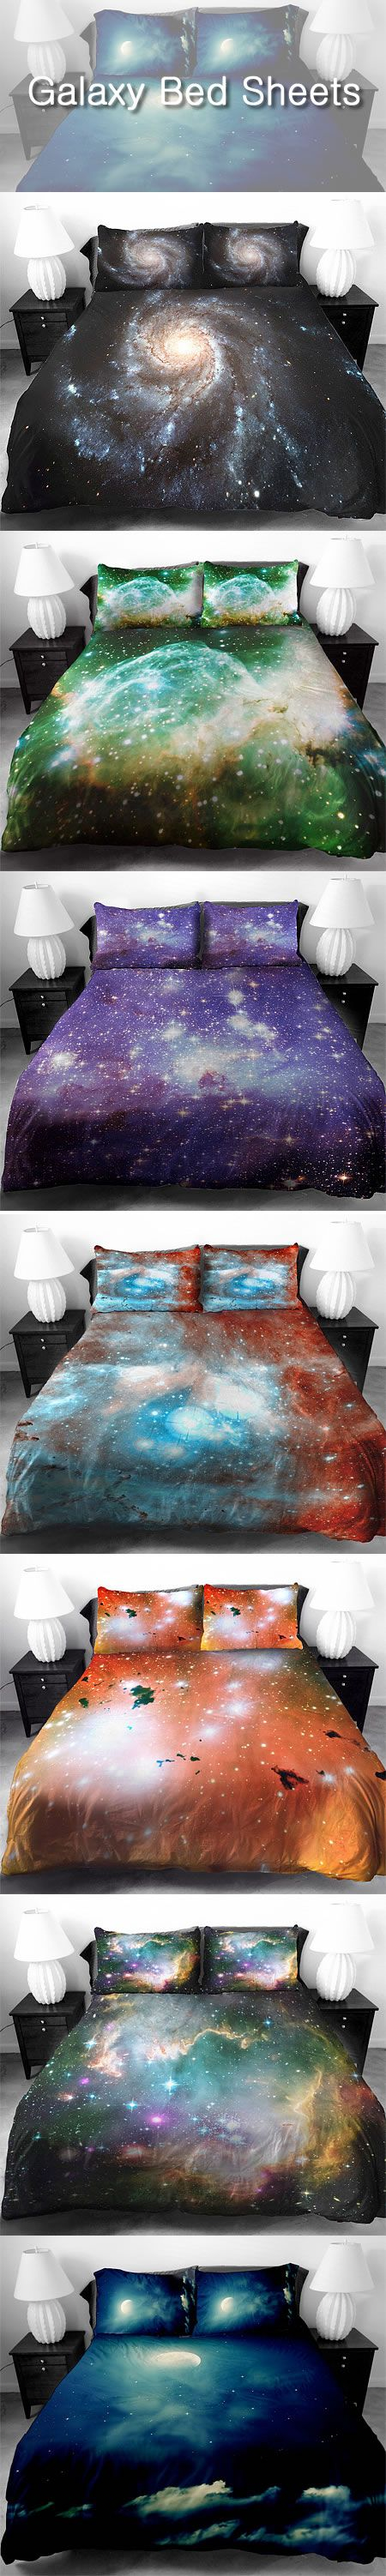 Totally Eye-Catching Galaxy Bed Sheets.